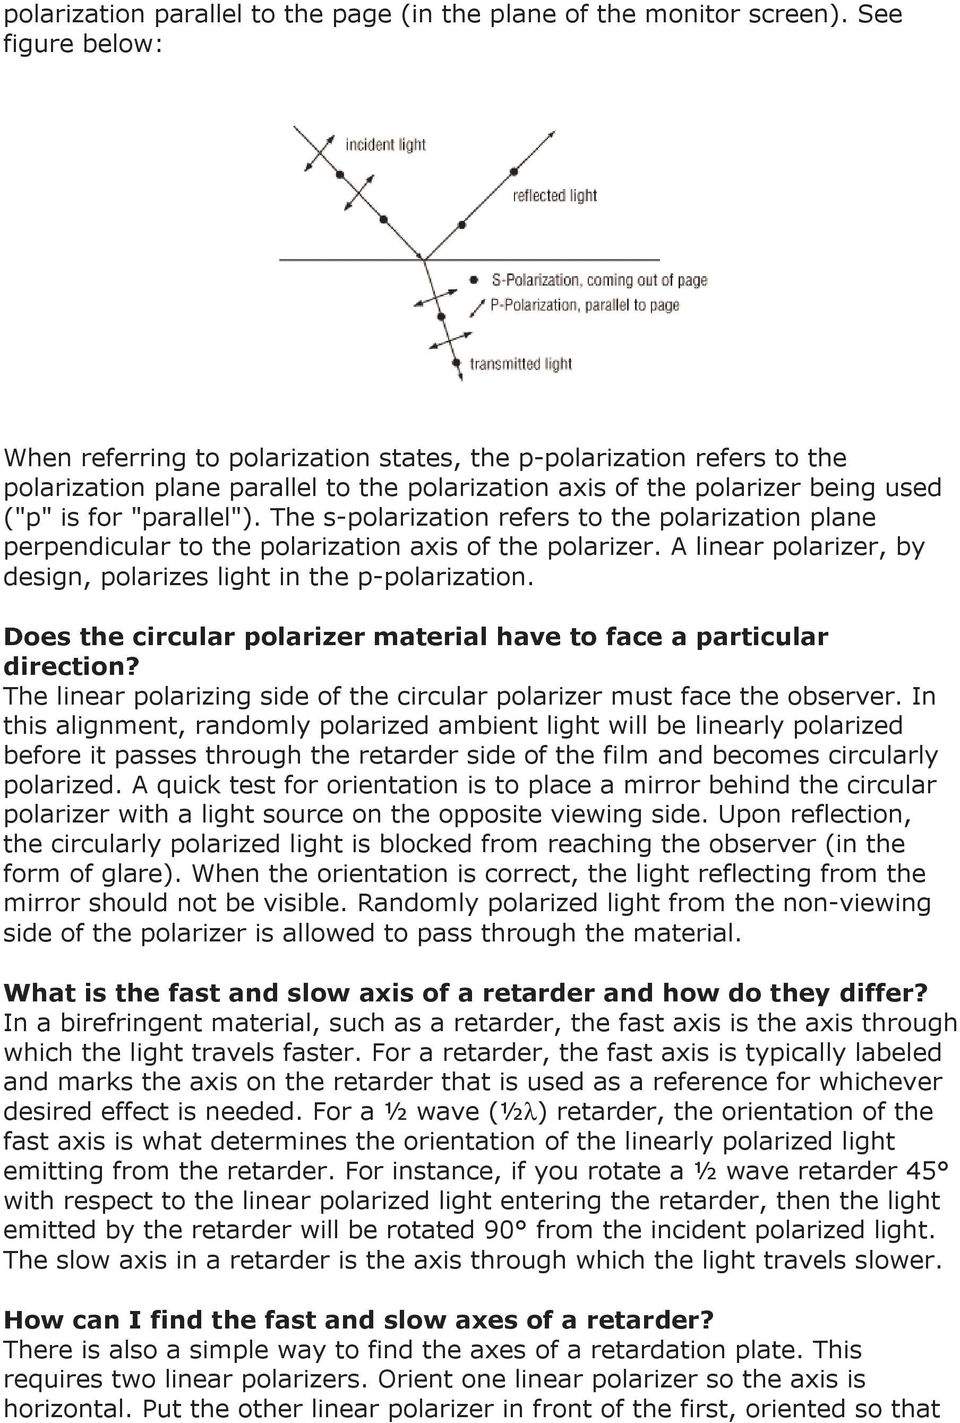 The s-polarization refers to the polarization plane perpendicular to the polarization axis of the polarizer. A linear polarizer, by design, polarizes light in the p-polarization.